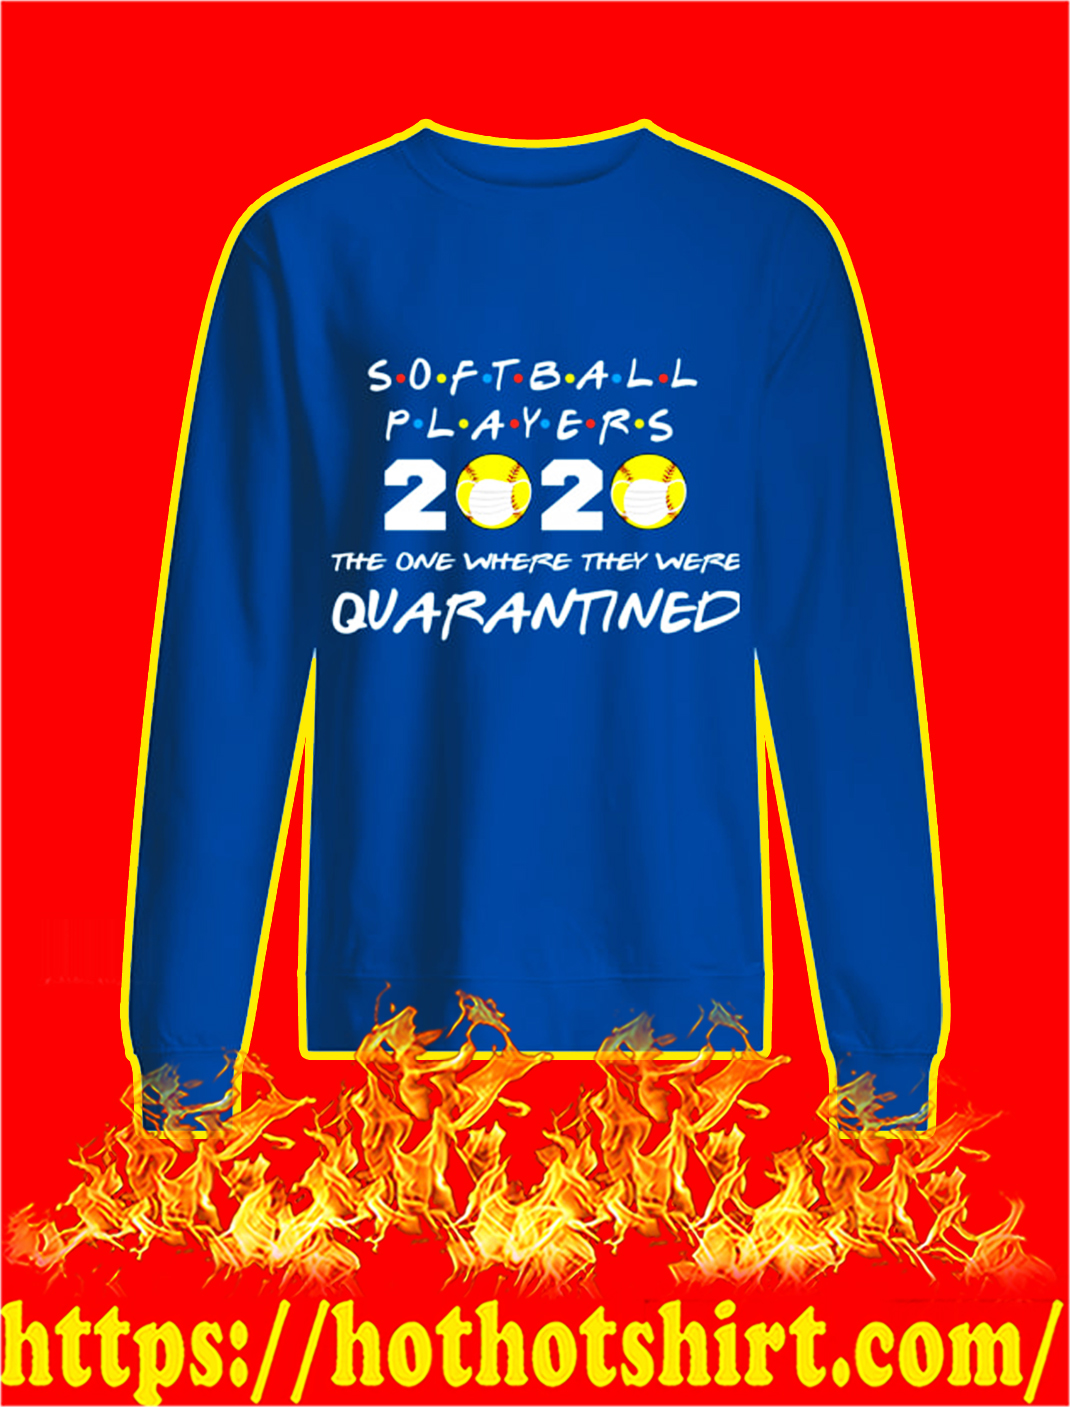 Softball players 2020 the one where they were quarantined sweatshirt